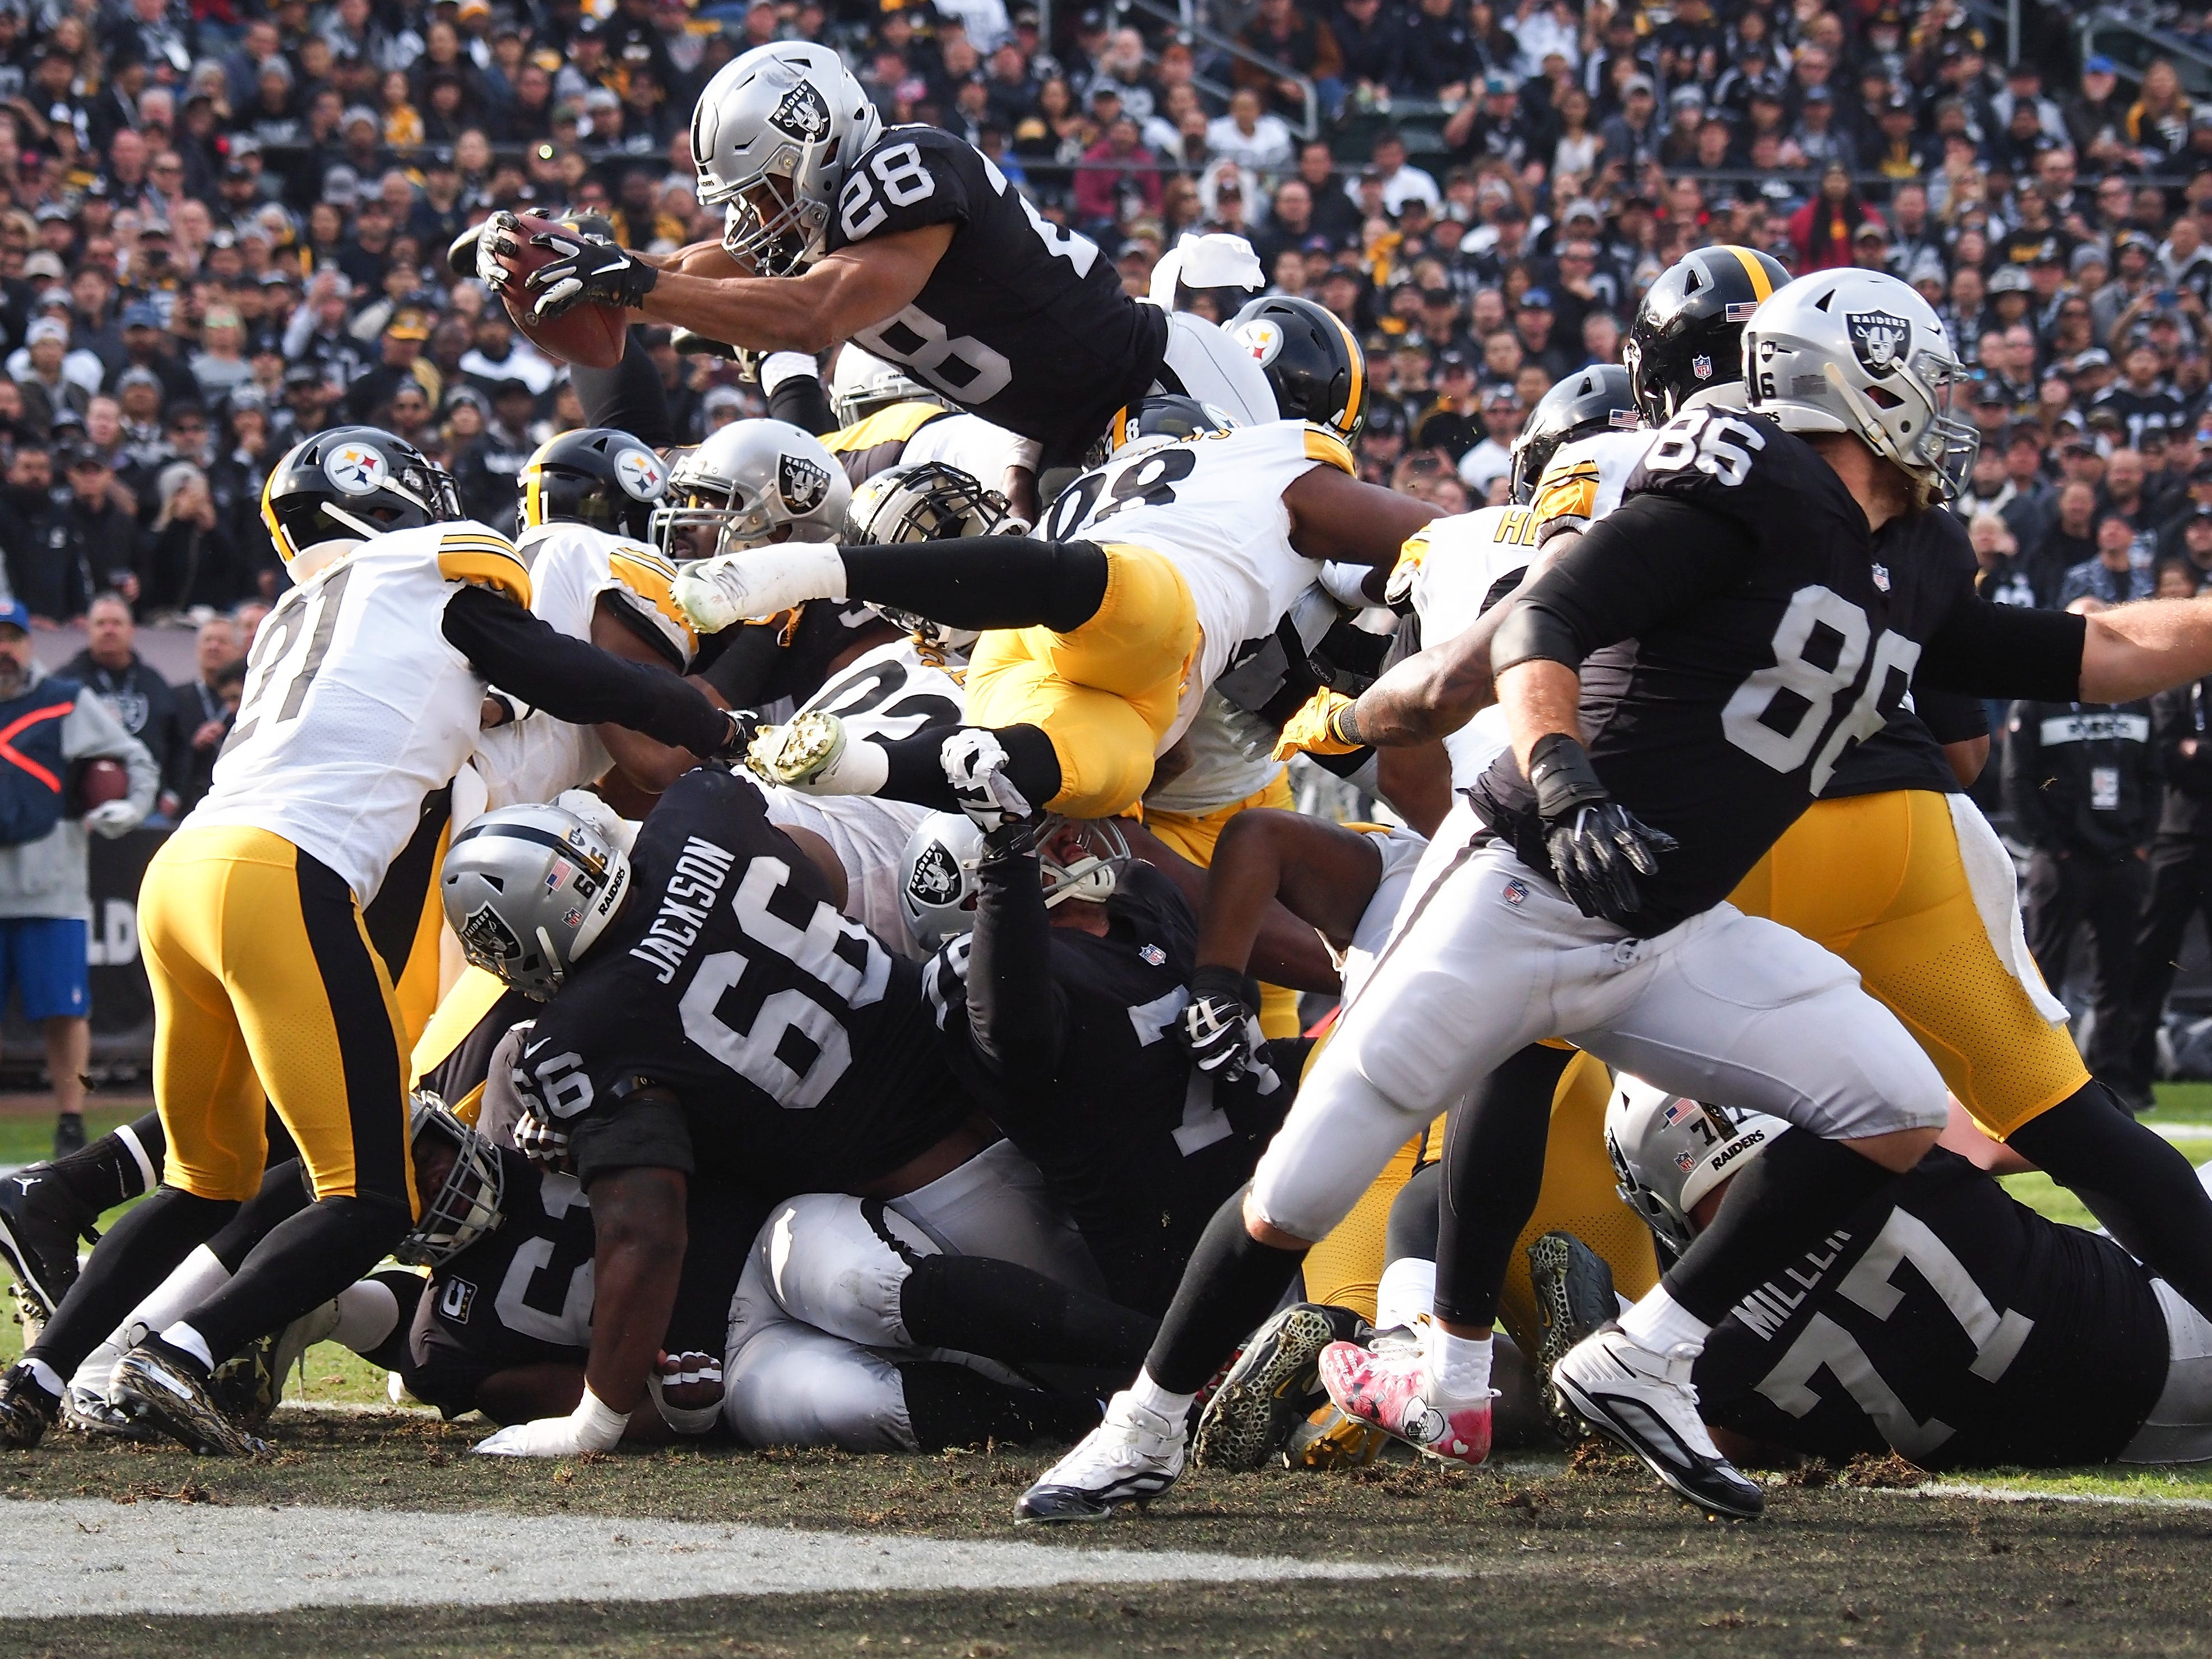 Week 14: Oakland Raiders running back Doug Martin scores a touchdown against the Pittsburgh Steelers during the first quarter at Oakland Coliseum. The Raiders won the game, 24-21.